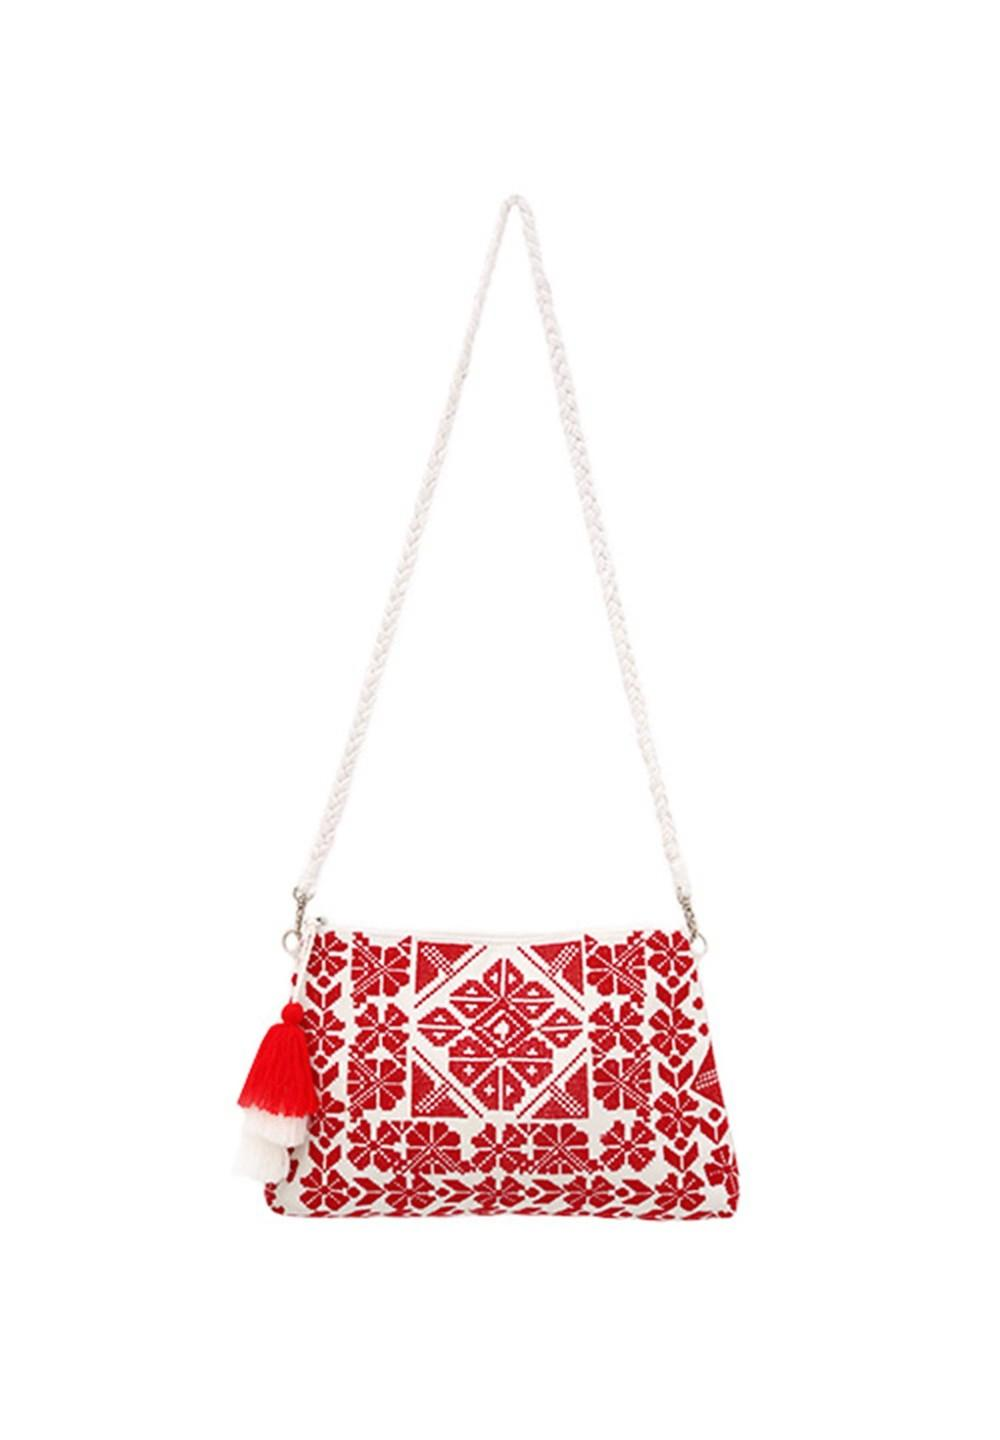 [Swaraj]EMBROIDERY CLUTCH レッド - #1